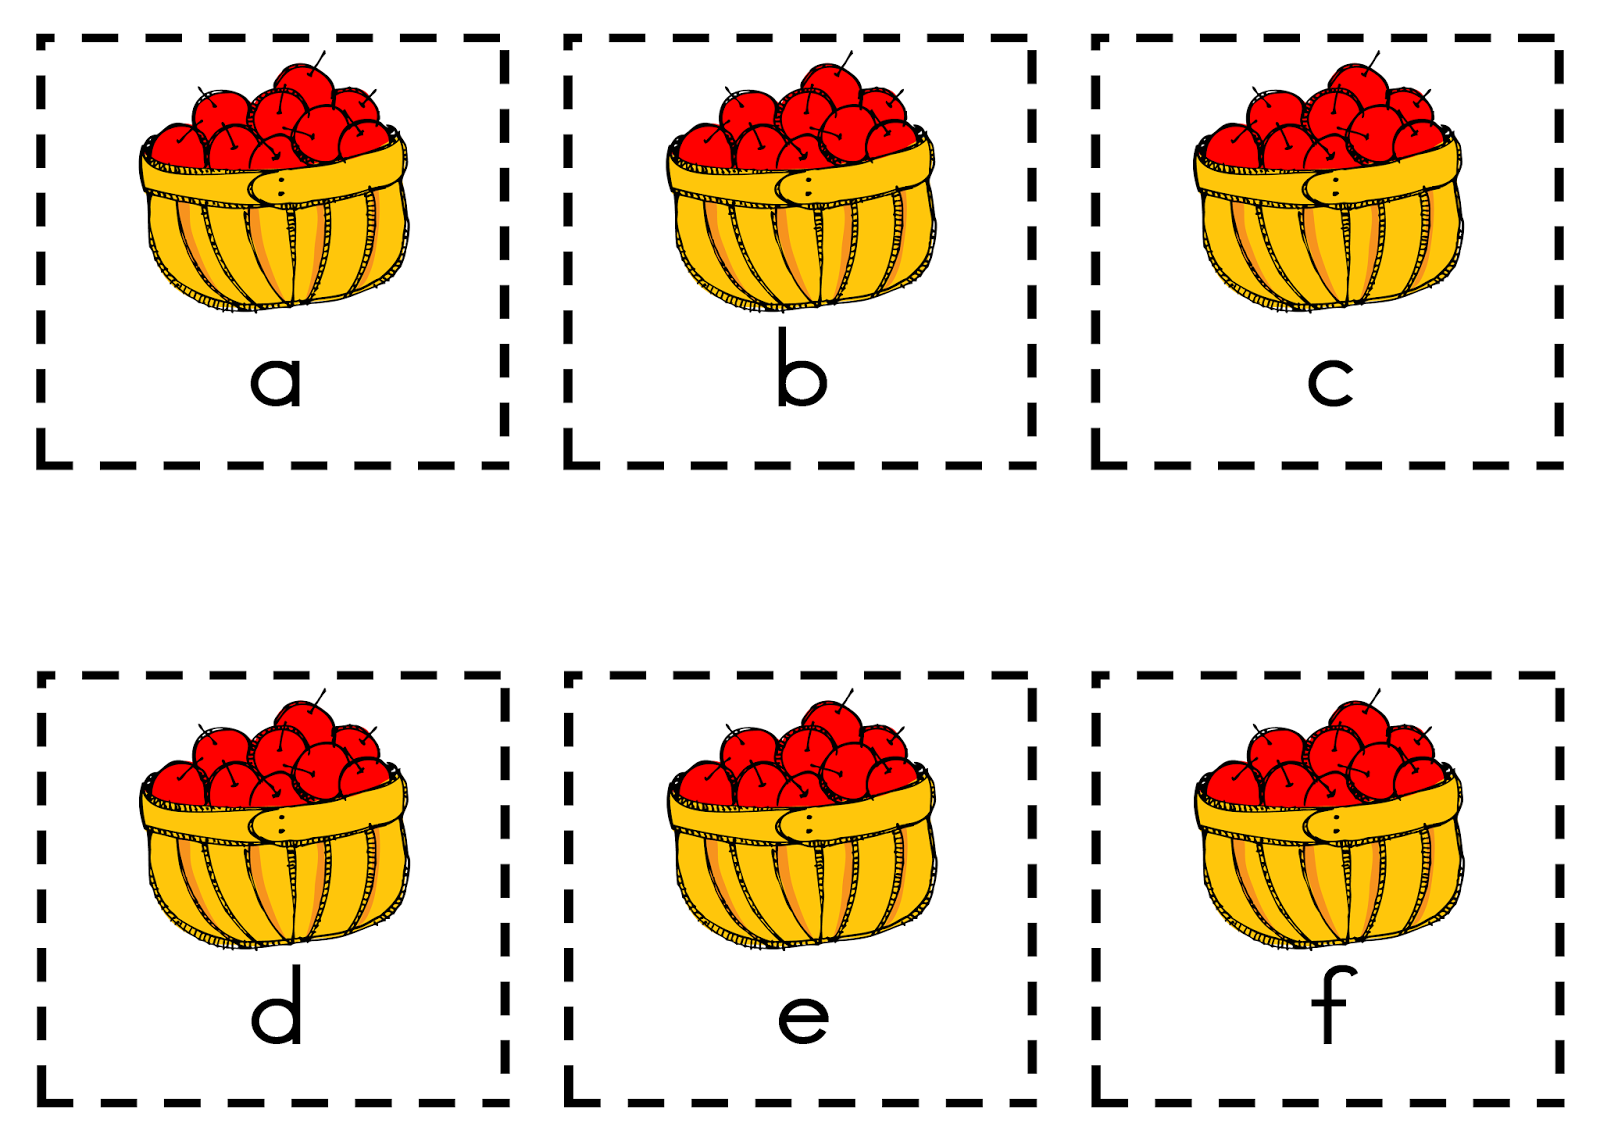 Teaching Is Sweet Johnny Appleseed Letter Name Sound